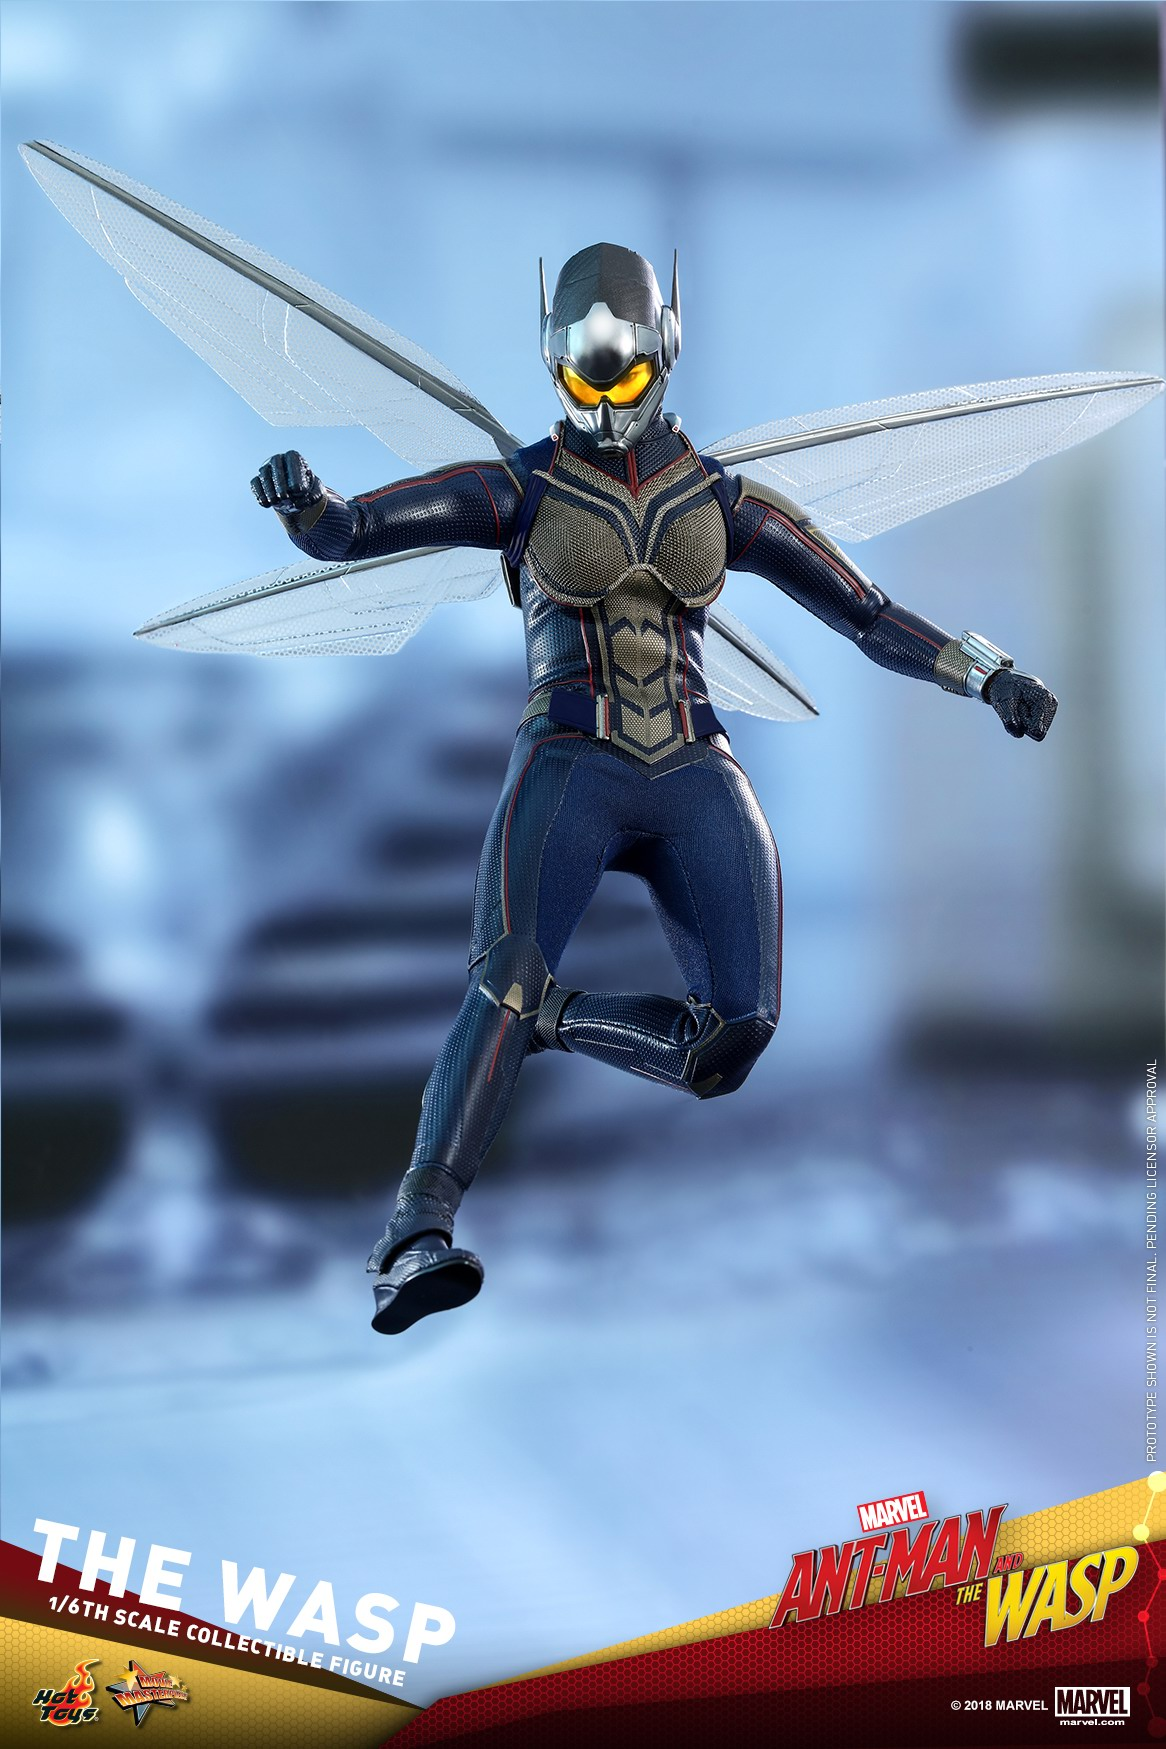 Hot-Toys-Ant-Man-and-The-Wasp-The-Wasp-Collectible-Figure_PR18.jpg